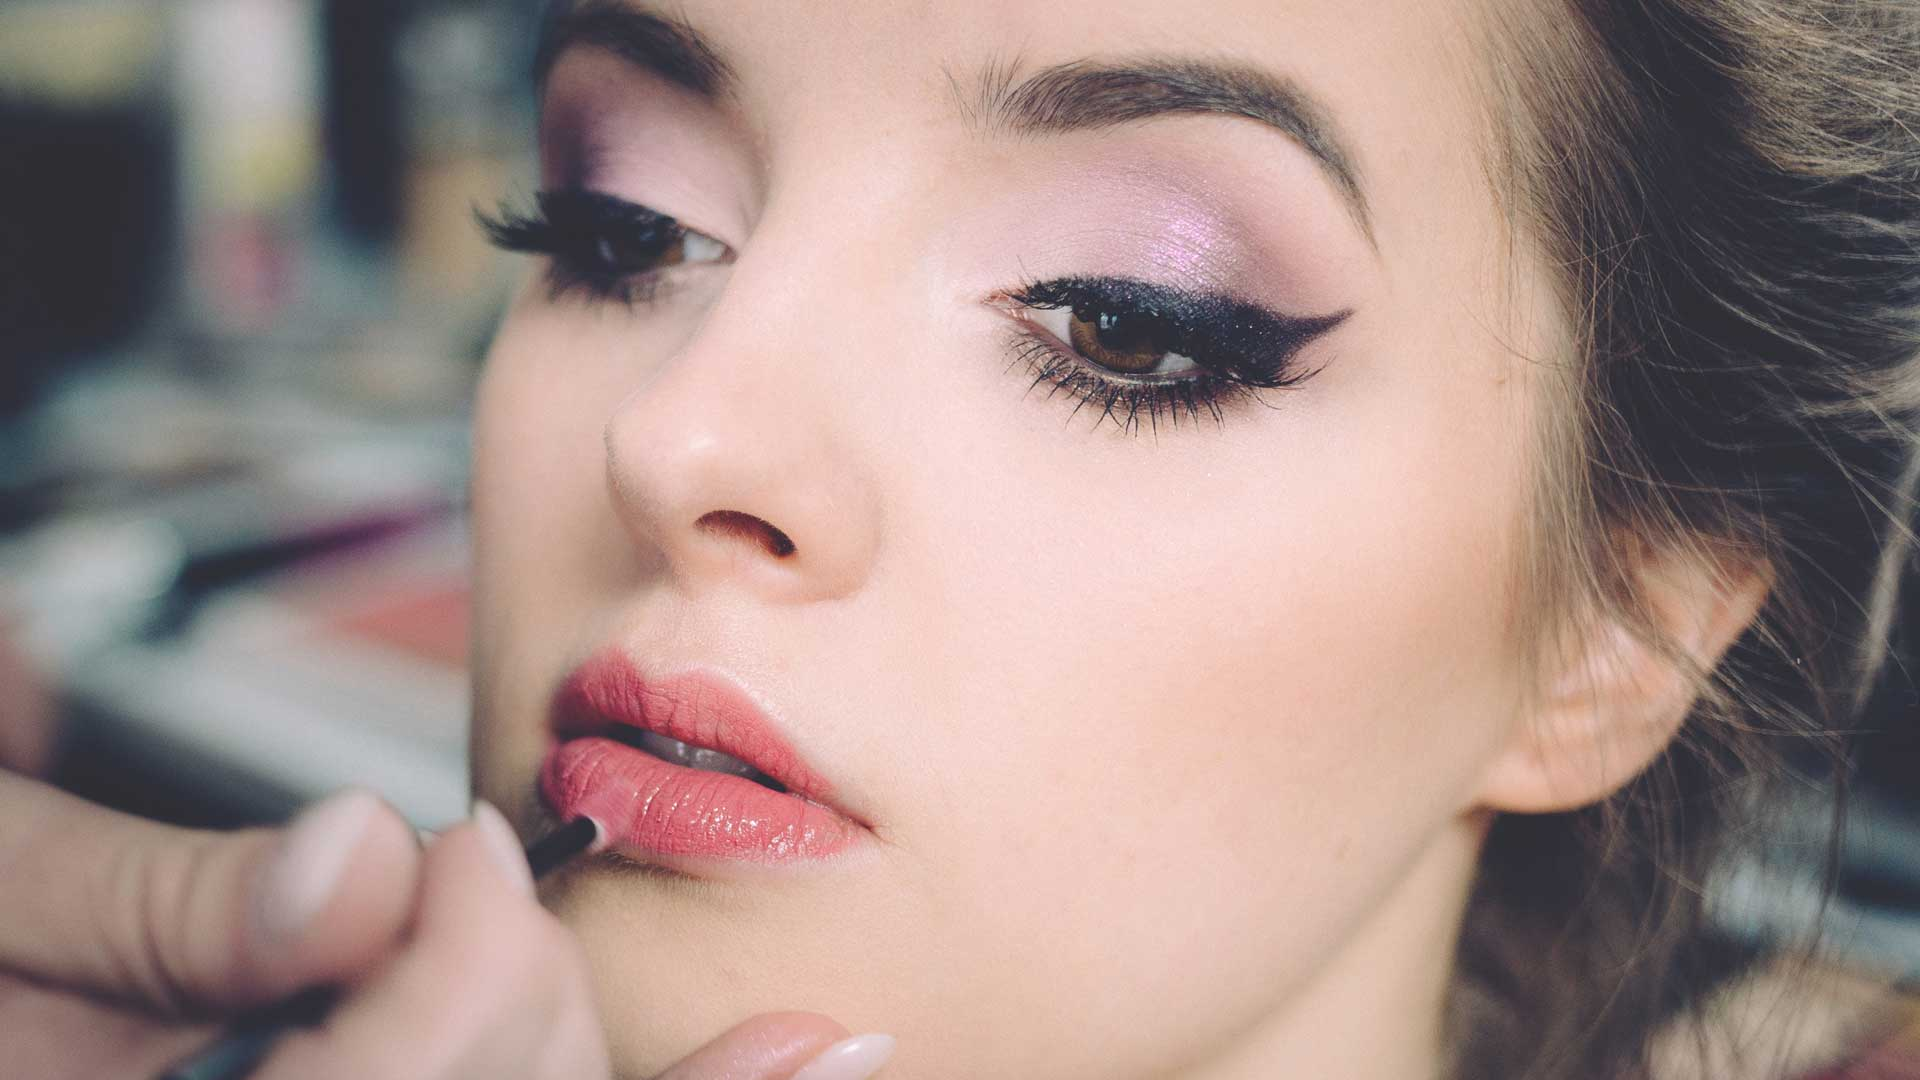 Pros-&-Cons-of-Your-Eyes-and-Lips-Makeup-on-TheSunrisePost